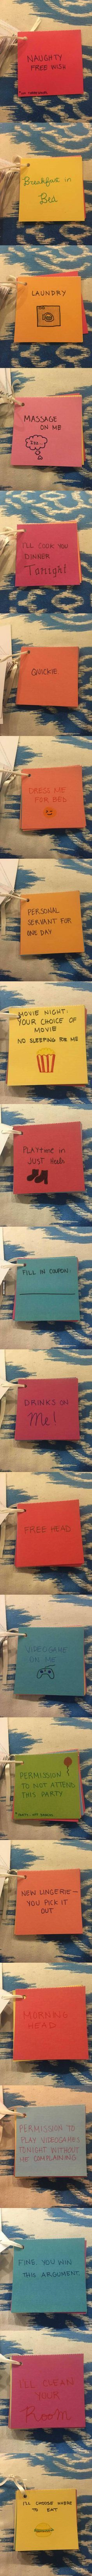 This Guy's Girlfriend Made Him Coupons For Their Anniversary - 9GAG